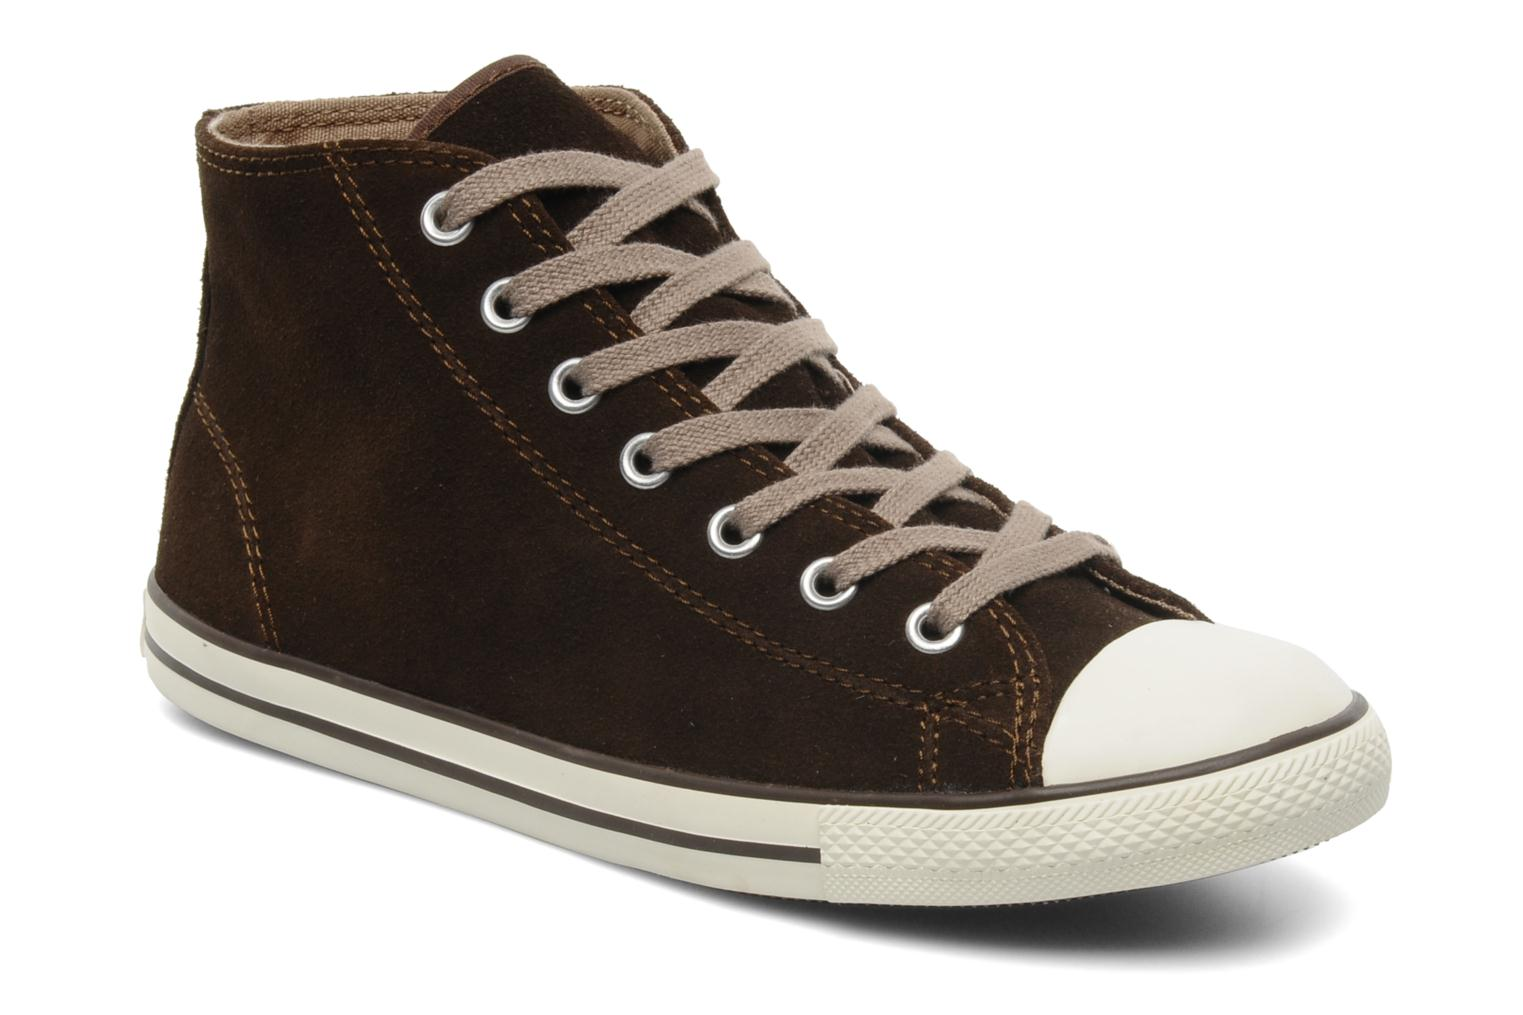 Foto Tenis moda Converse All Star Dainty Suede Mid Mujer